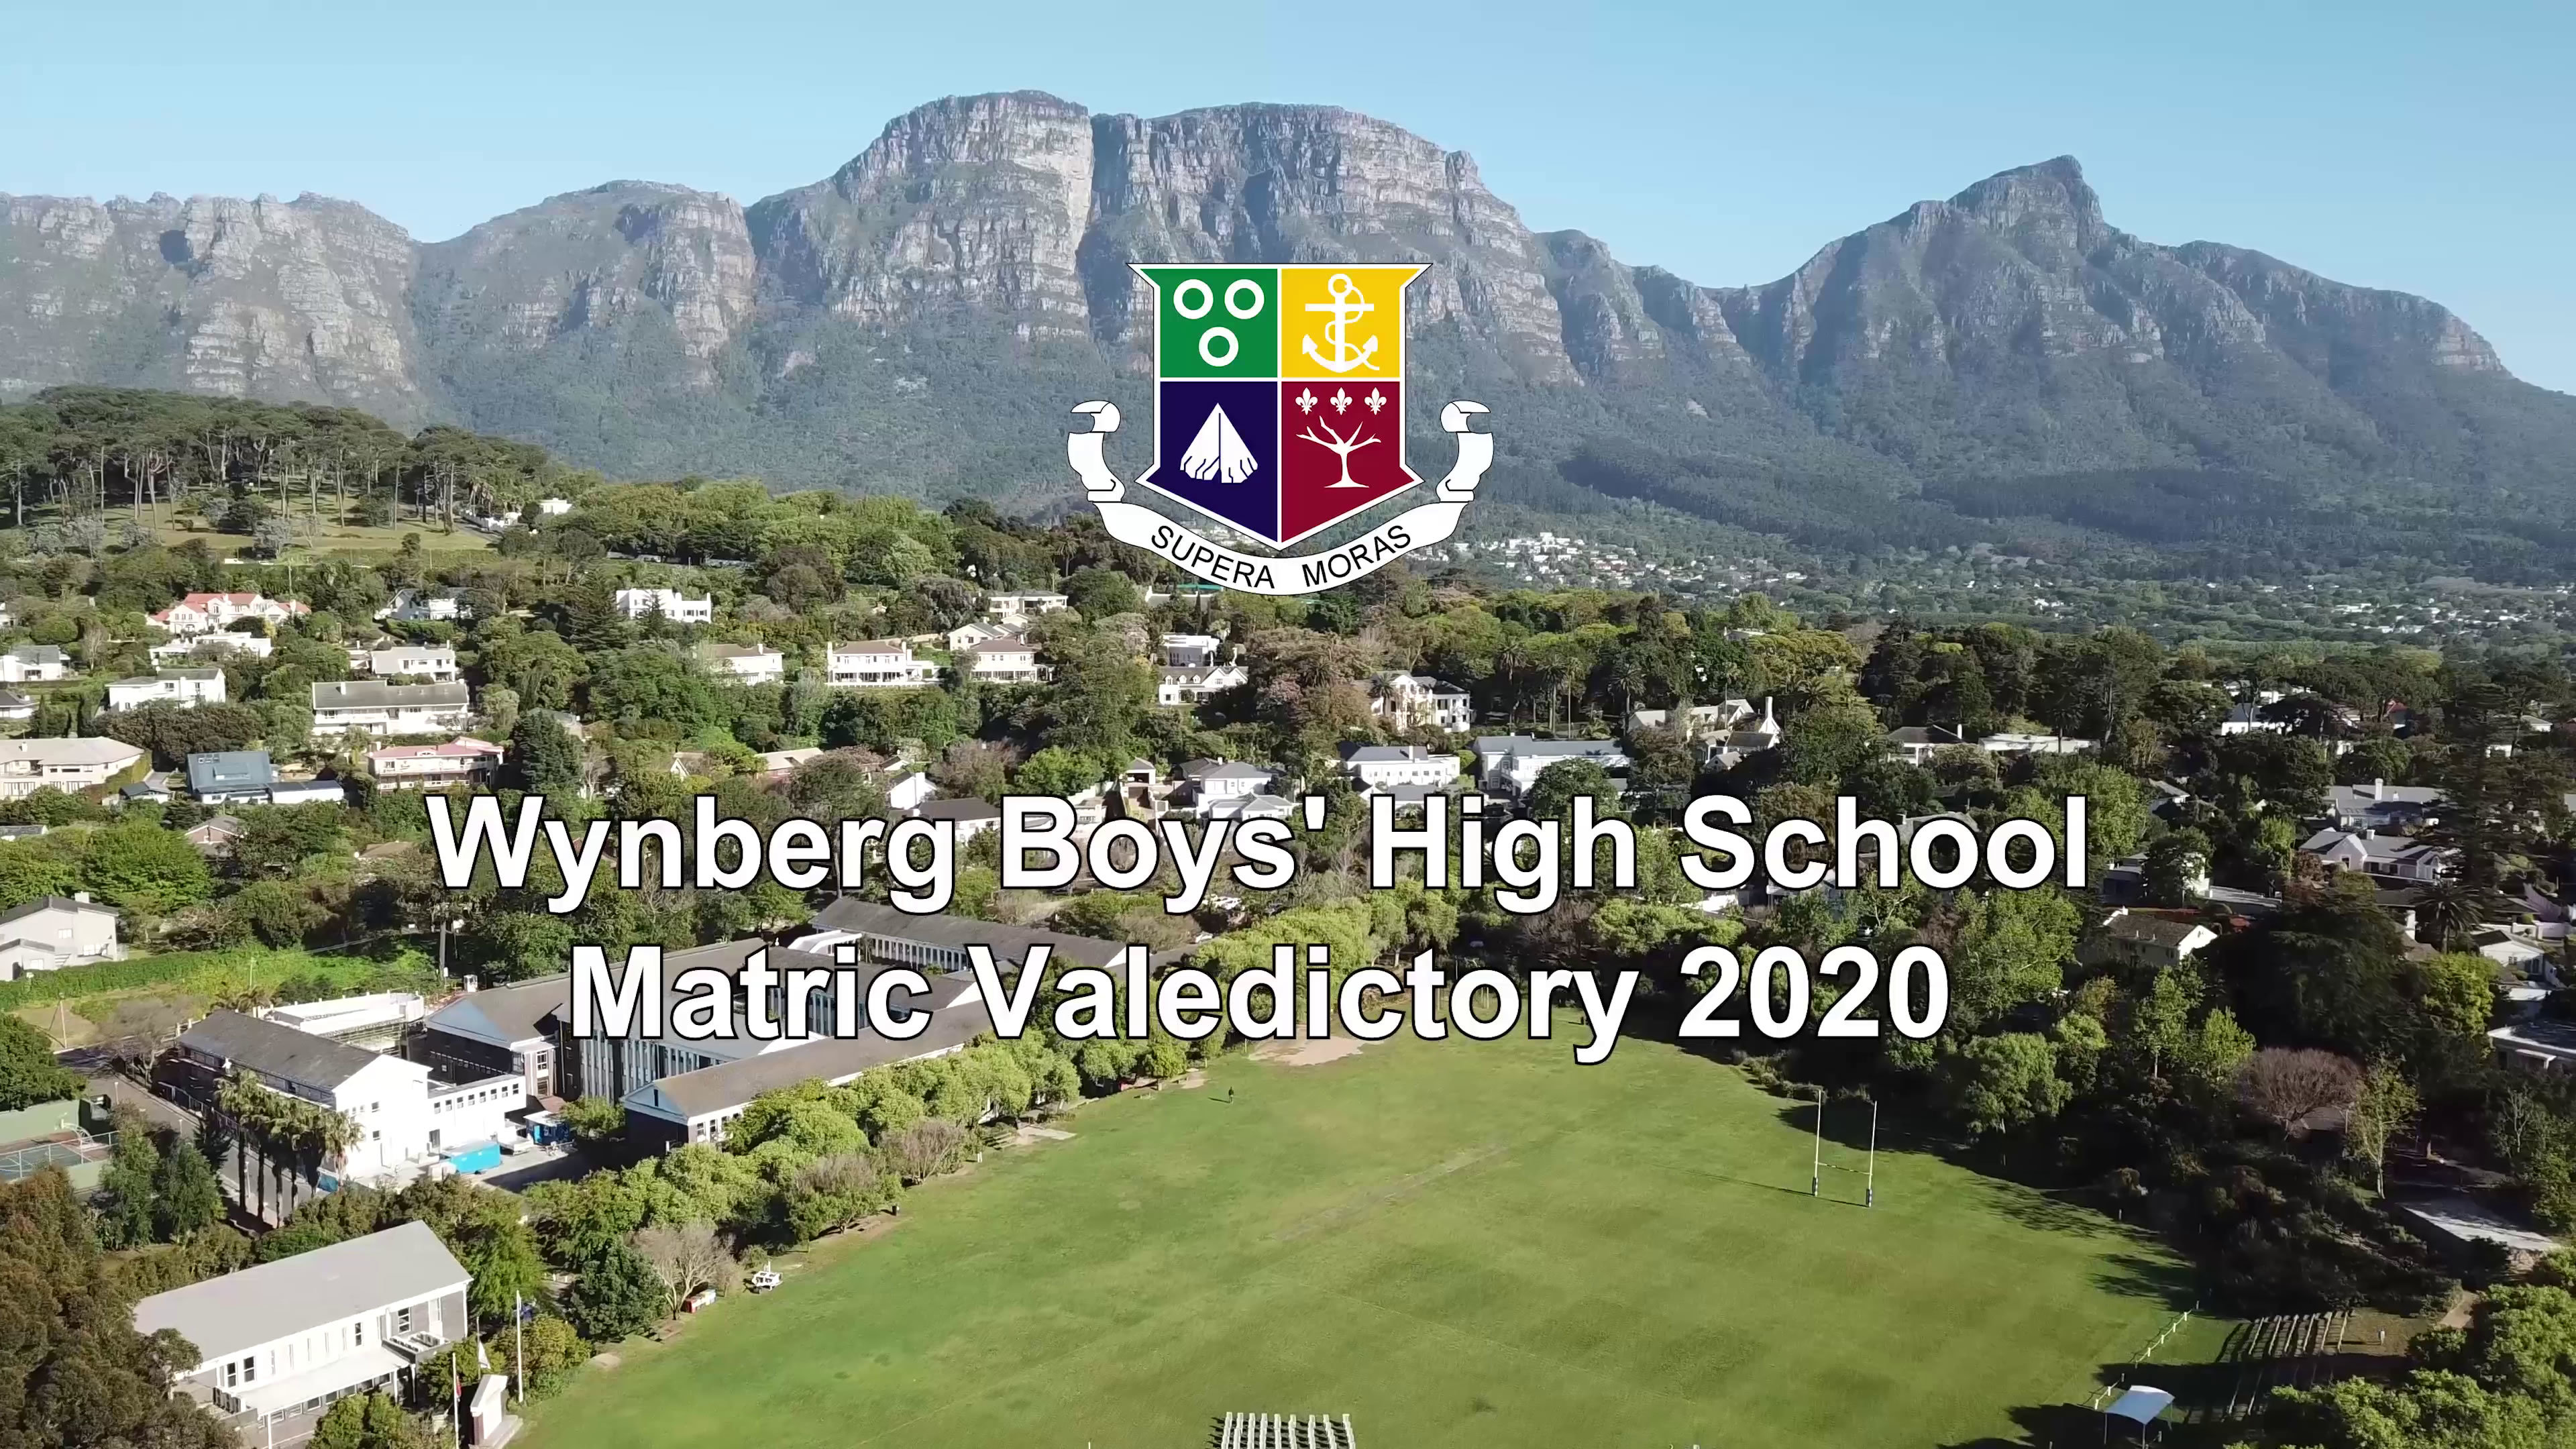 Video: Matric Valedictory 2020, a Drone's Eye View